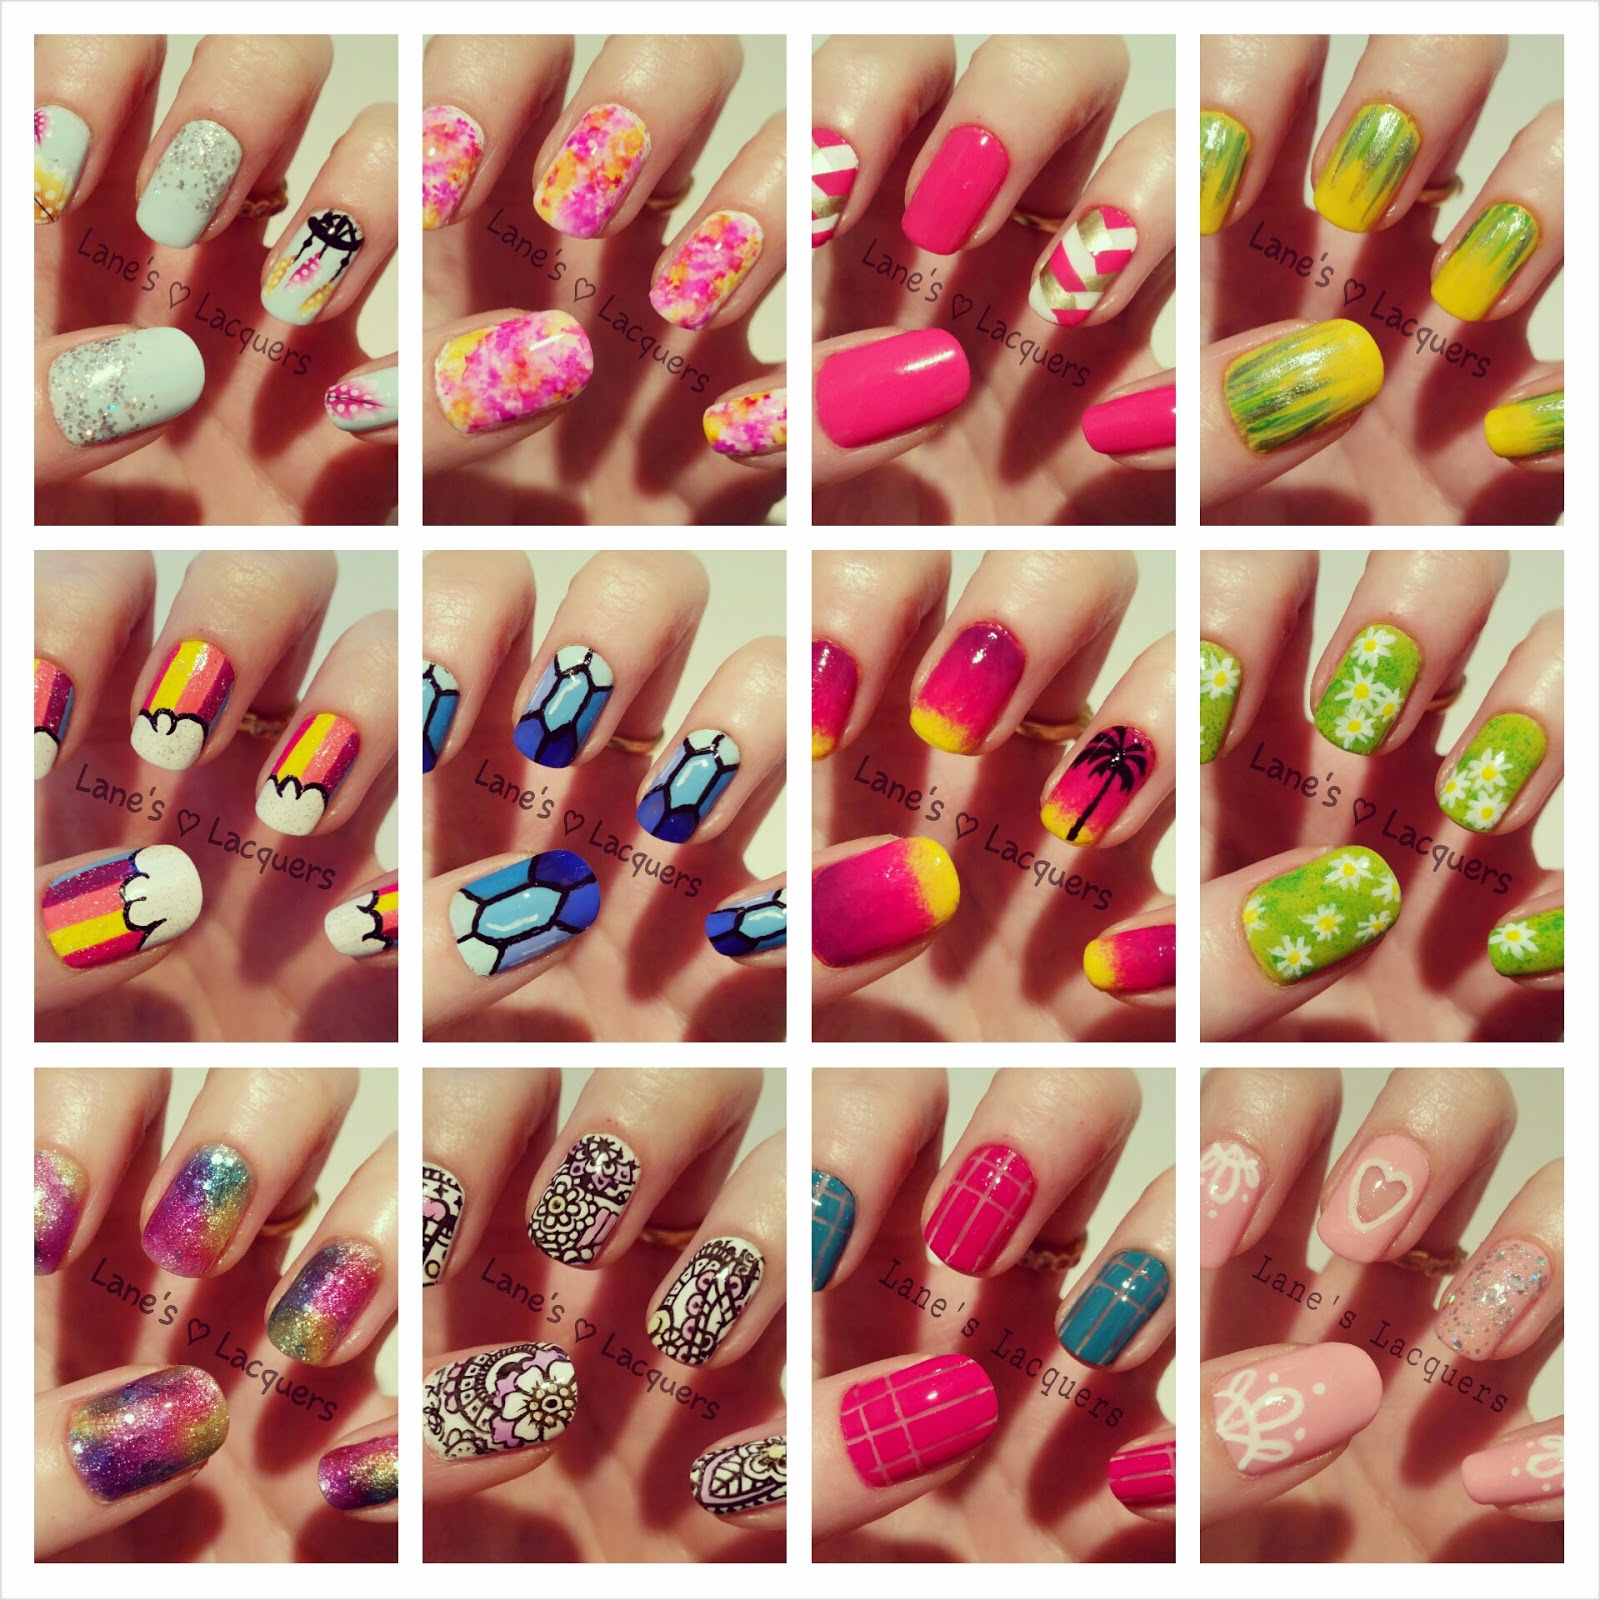 lanes-lacquers-favourite-nail-art-manicures-31-day-challenge-2015